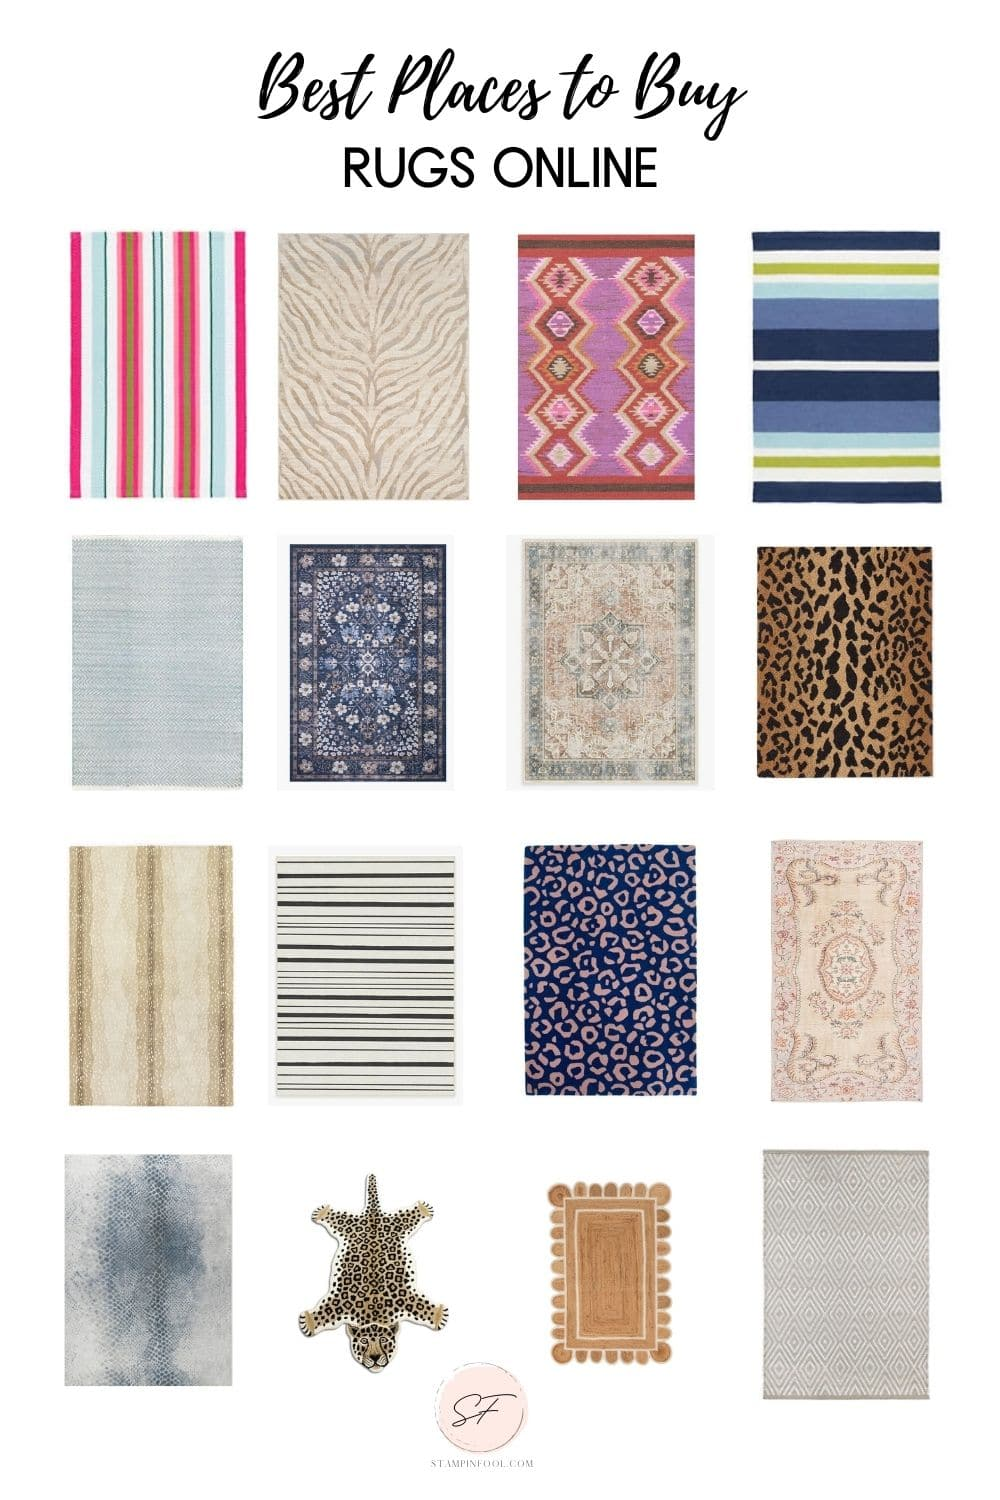 10+ AMAZING SOURCES FOR BUYING AFFORDABLE AREA RUGS ONLINE RIGHT NOW